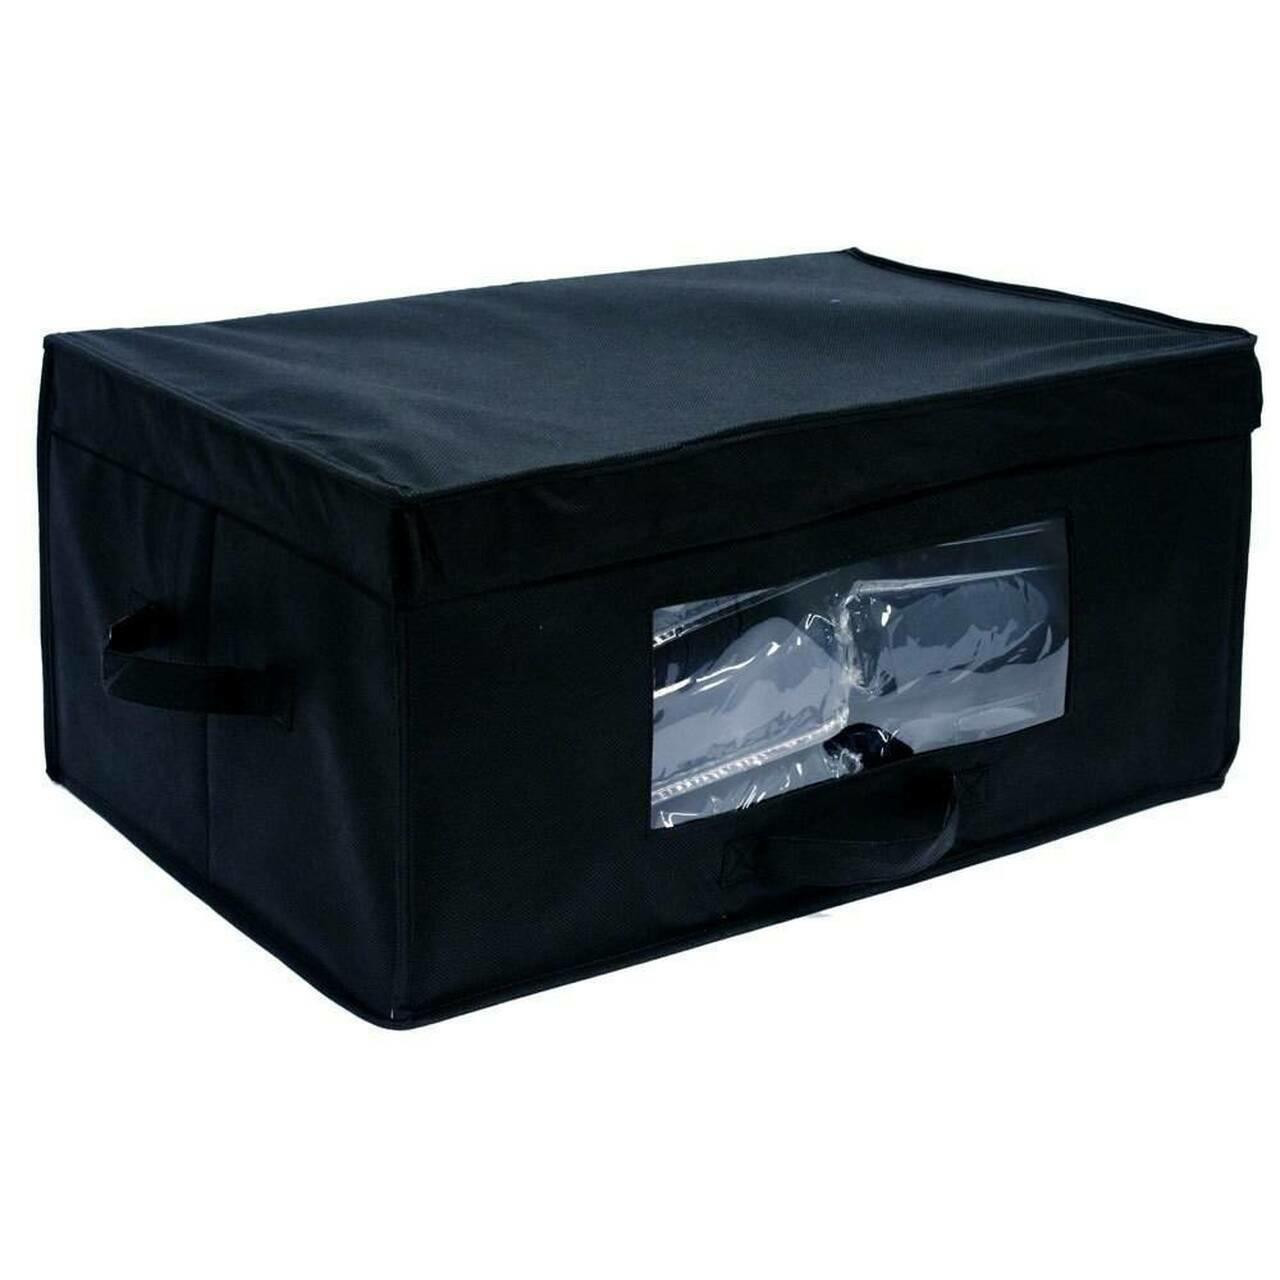 HOSPITALITY 1 SOURCE HOSPITALITY 1 SOURCE or NON-WOVEN or BLANKET BOX or IVORY OR BLACK